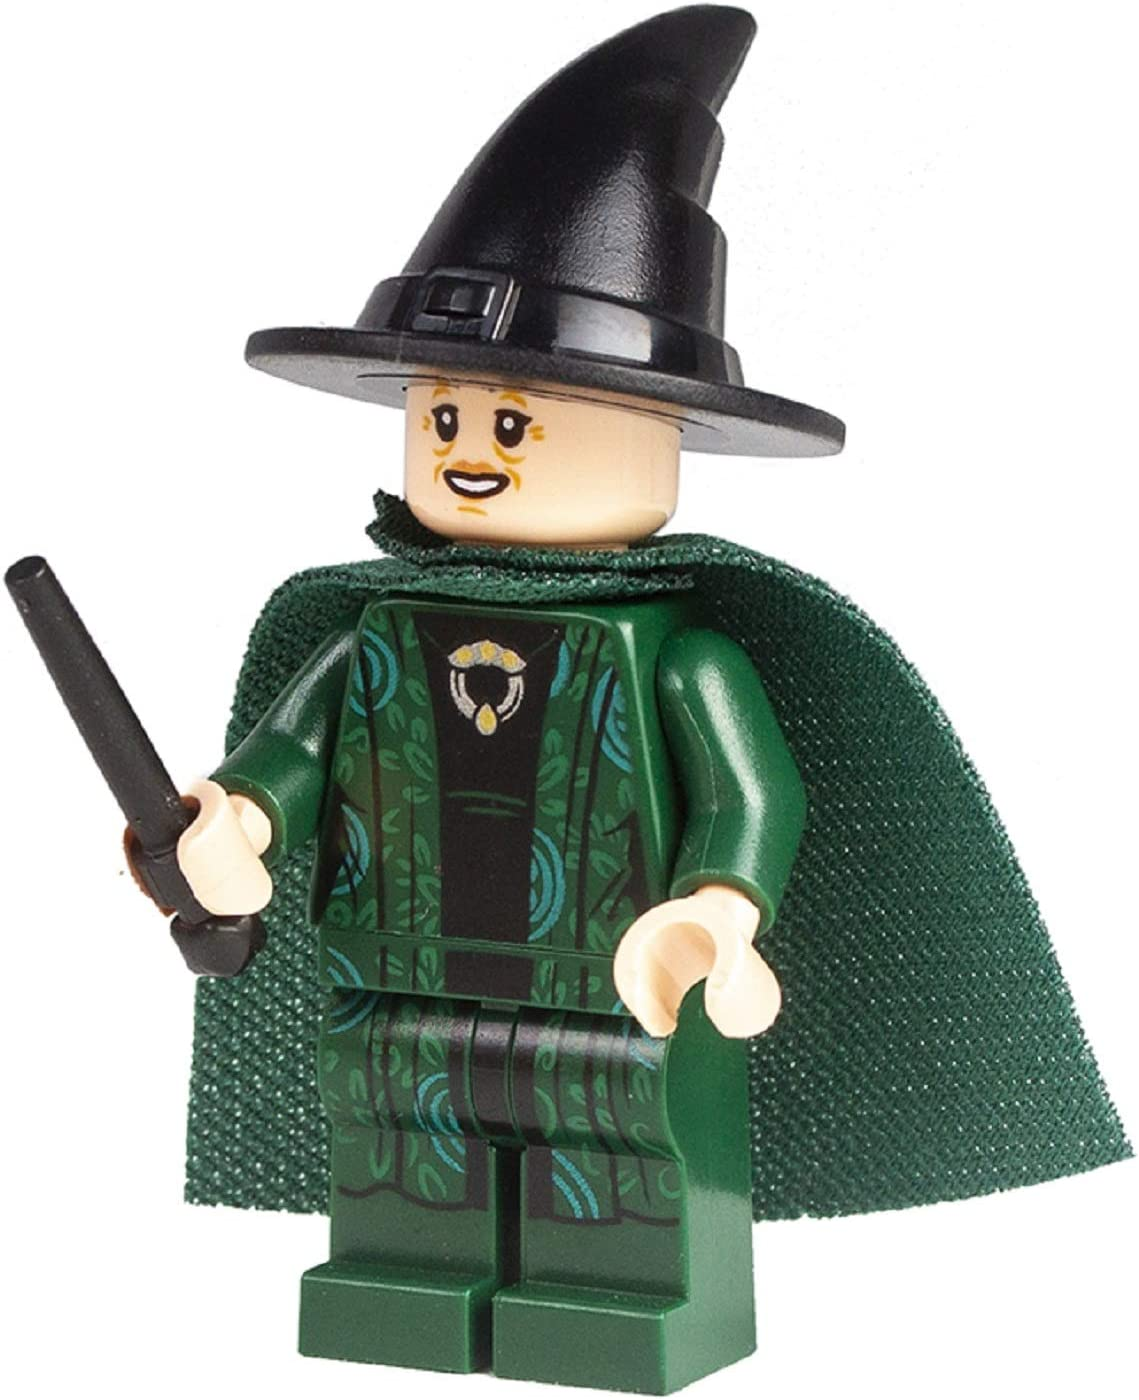 LEGO Harry Potter: Professor Mcgonagall with Green Cape and Wand